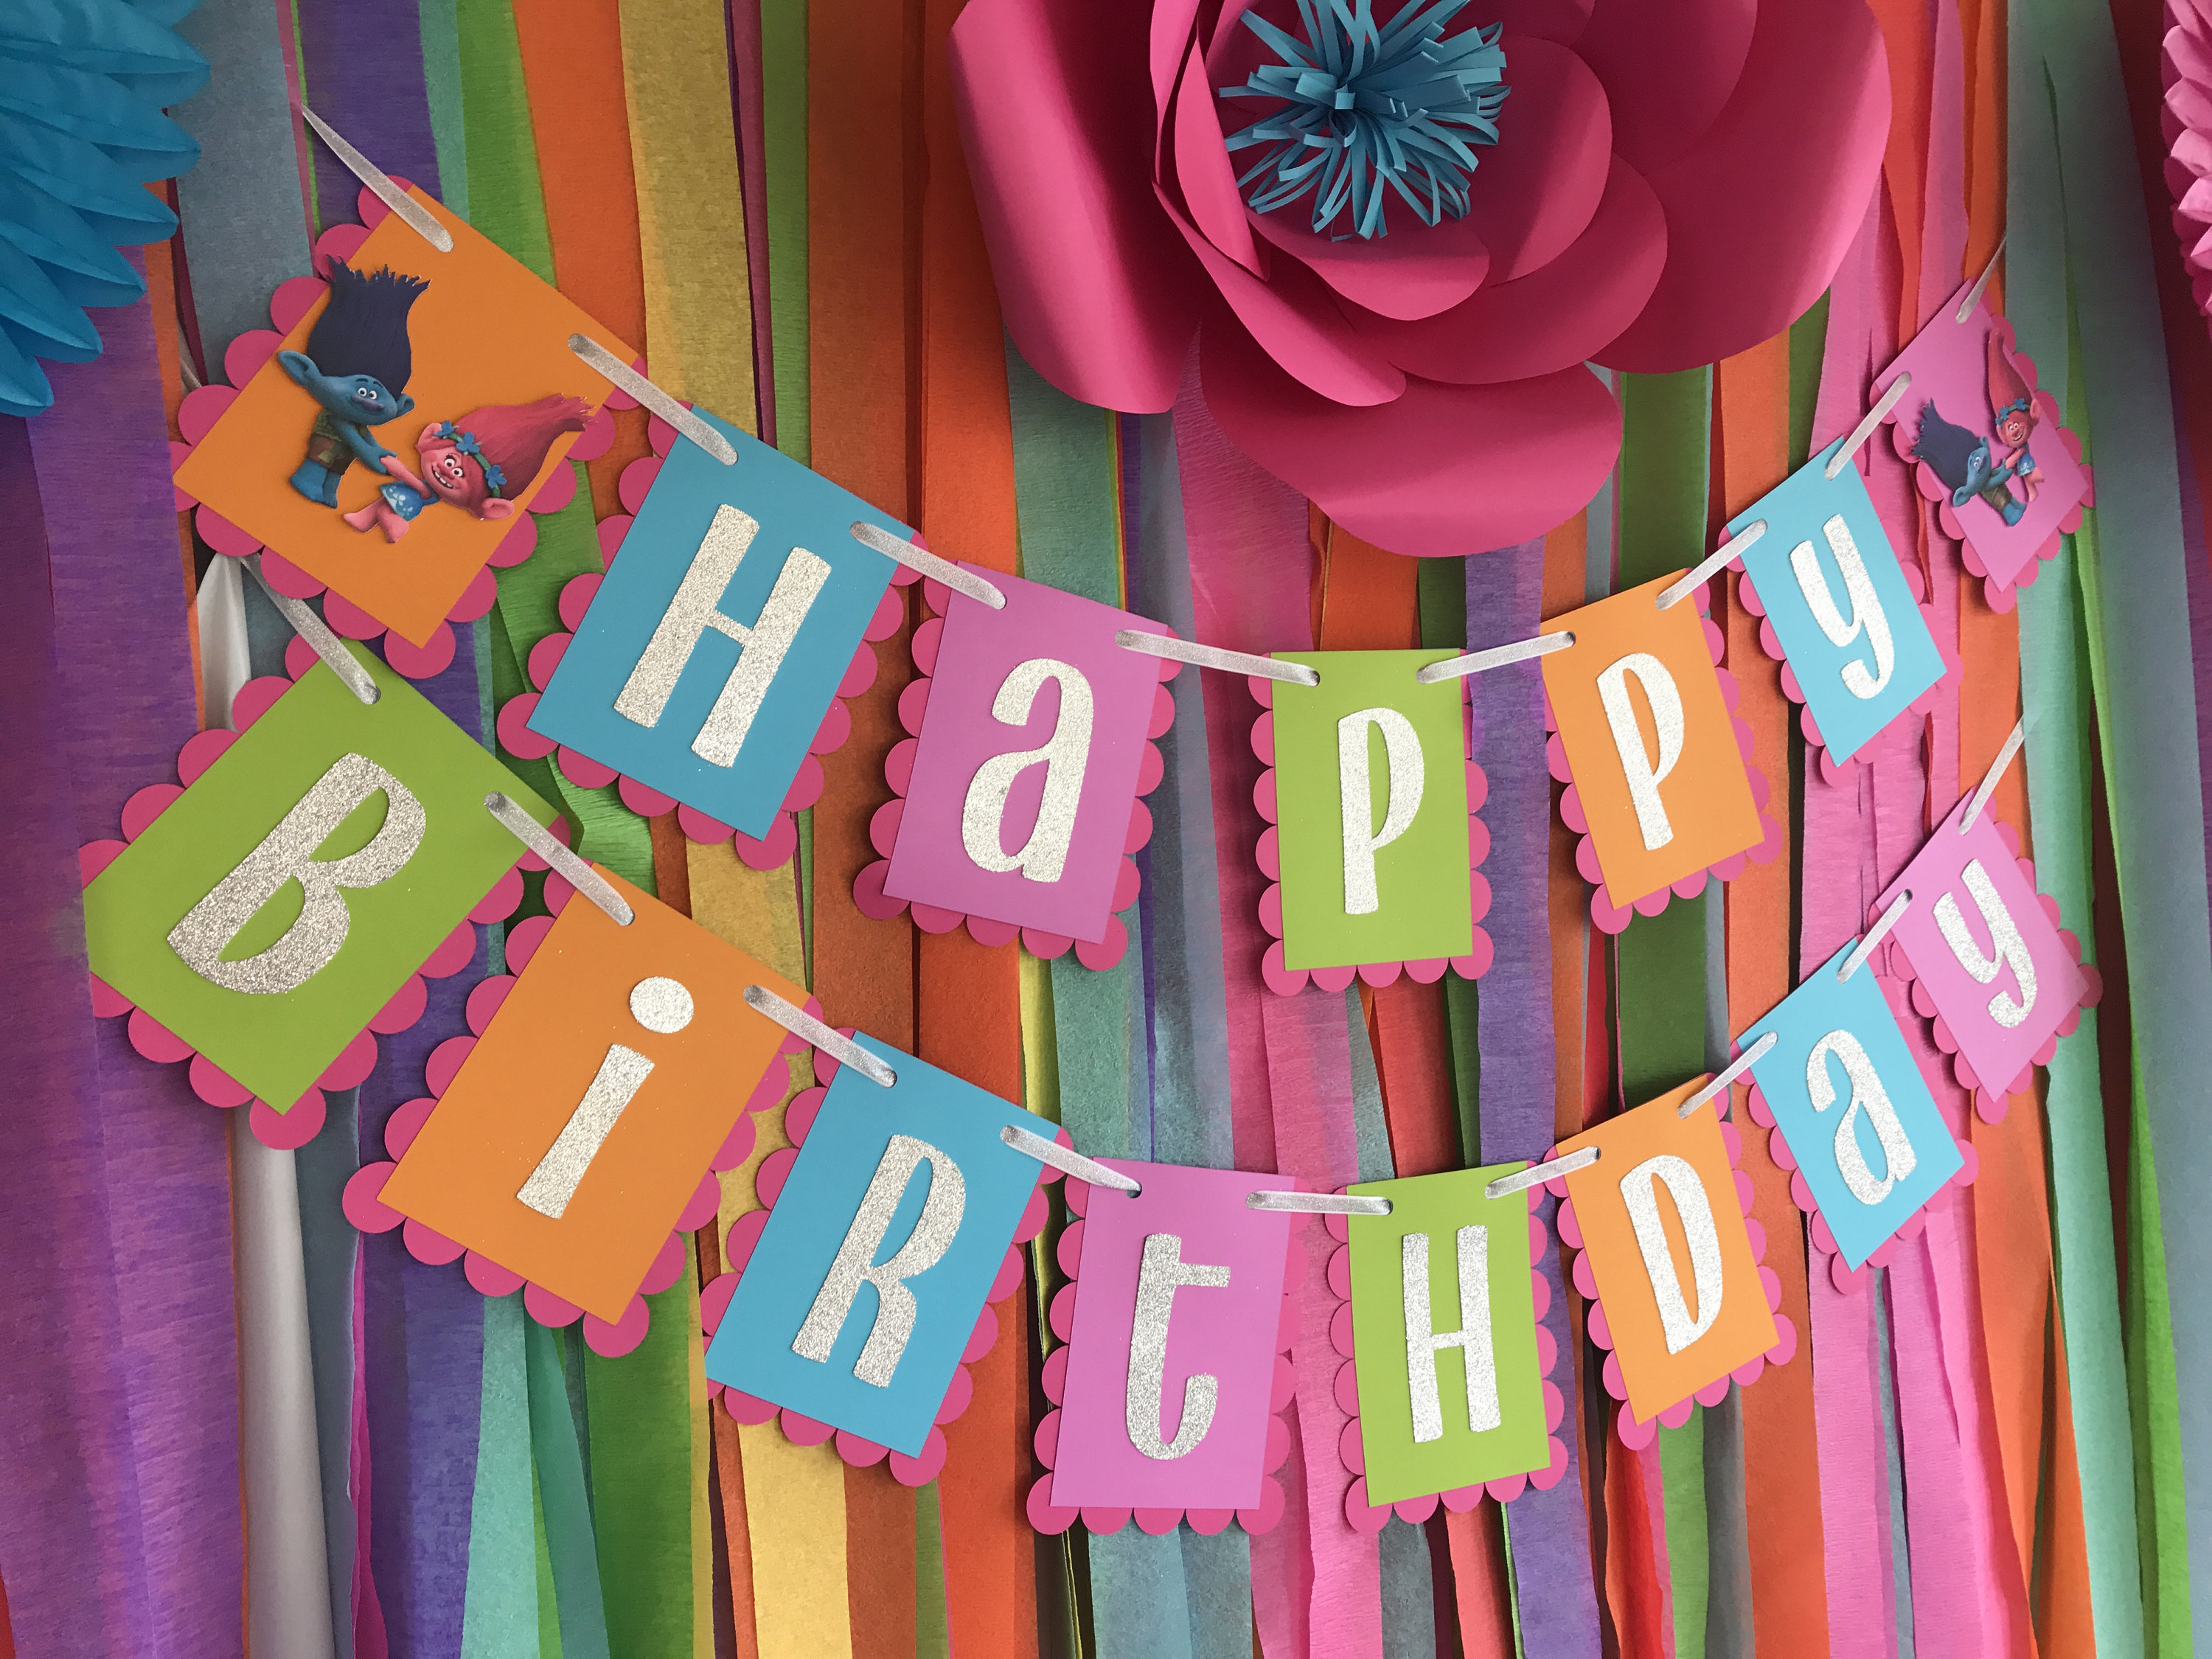 I Love How MAKSCraftshop Layered This Cute Happy Birthday Banner Over A Wall Of Colorful Crepe Paper Streamers For An Eye Catching And Inexpensive Party